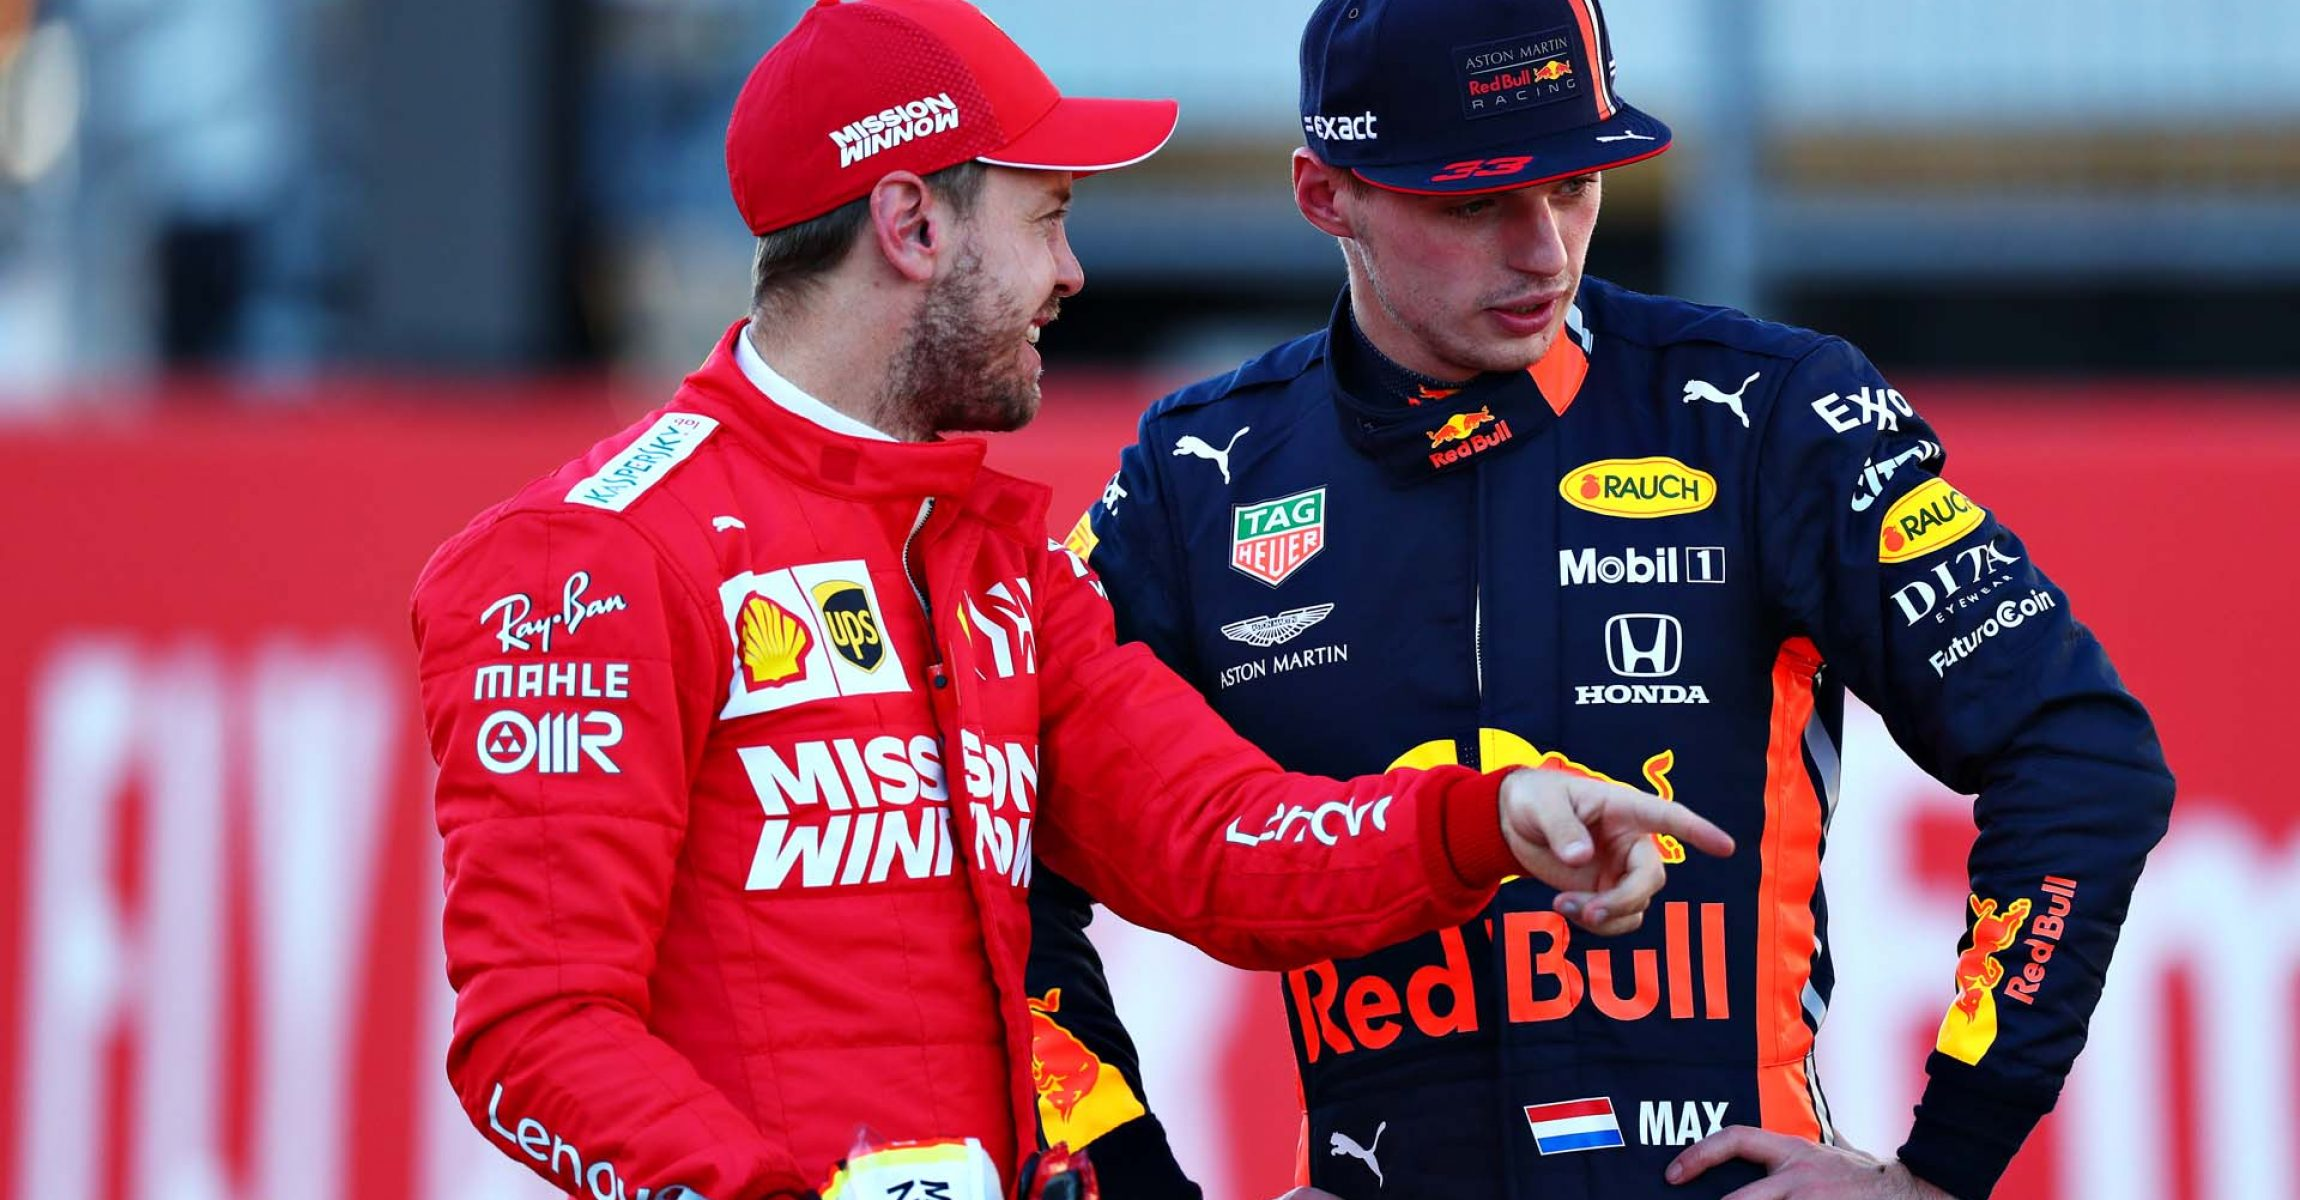 AUSTIN, TEXAS - NOVEMBER 02: Second place qualifier Sebastian Vettel of Germany and Ferrari talks with third place qualifier Max Verstappen of Netherlands and Red Bull Racing in parc ferme during qualifying for the F1 Grand Prix of USA at Circuit of The Americas on November 02, 2019 in Austin, Texas. (Photo by Dan Istitene/Getty Images) // Getty Images / Red Bull Content Pool  // AP-222MSWZFW2111 // Usage for editorial use only //